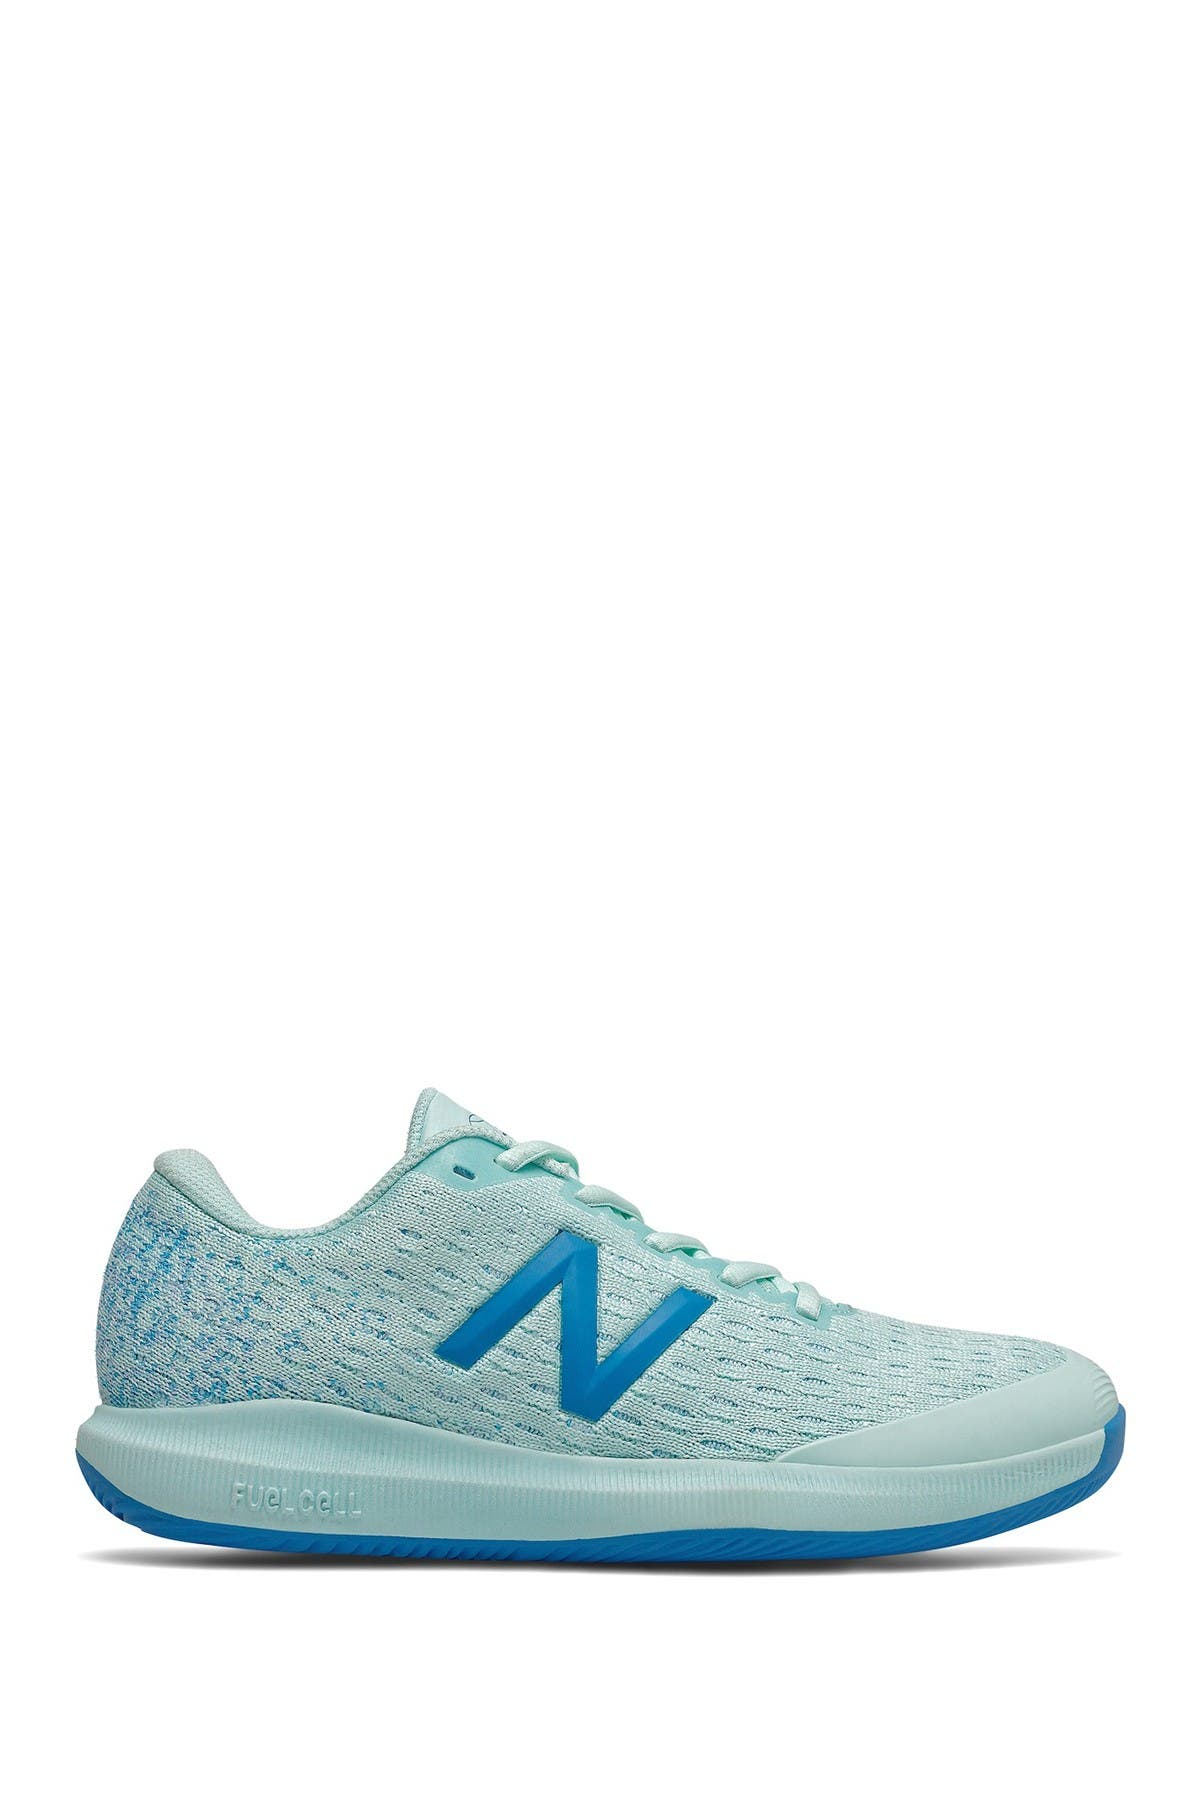 Image of New Balance 996 V4 Tennis Shoe - Wide Width Available